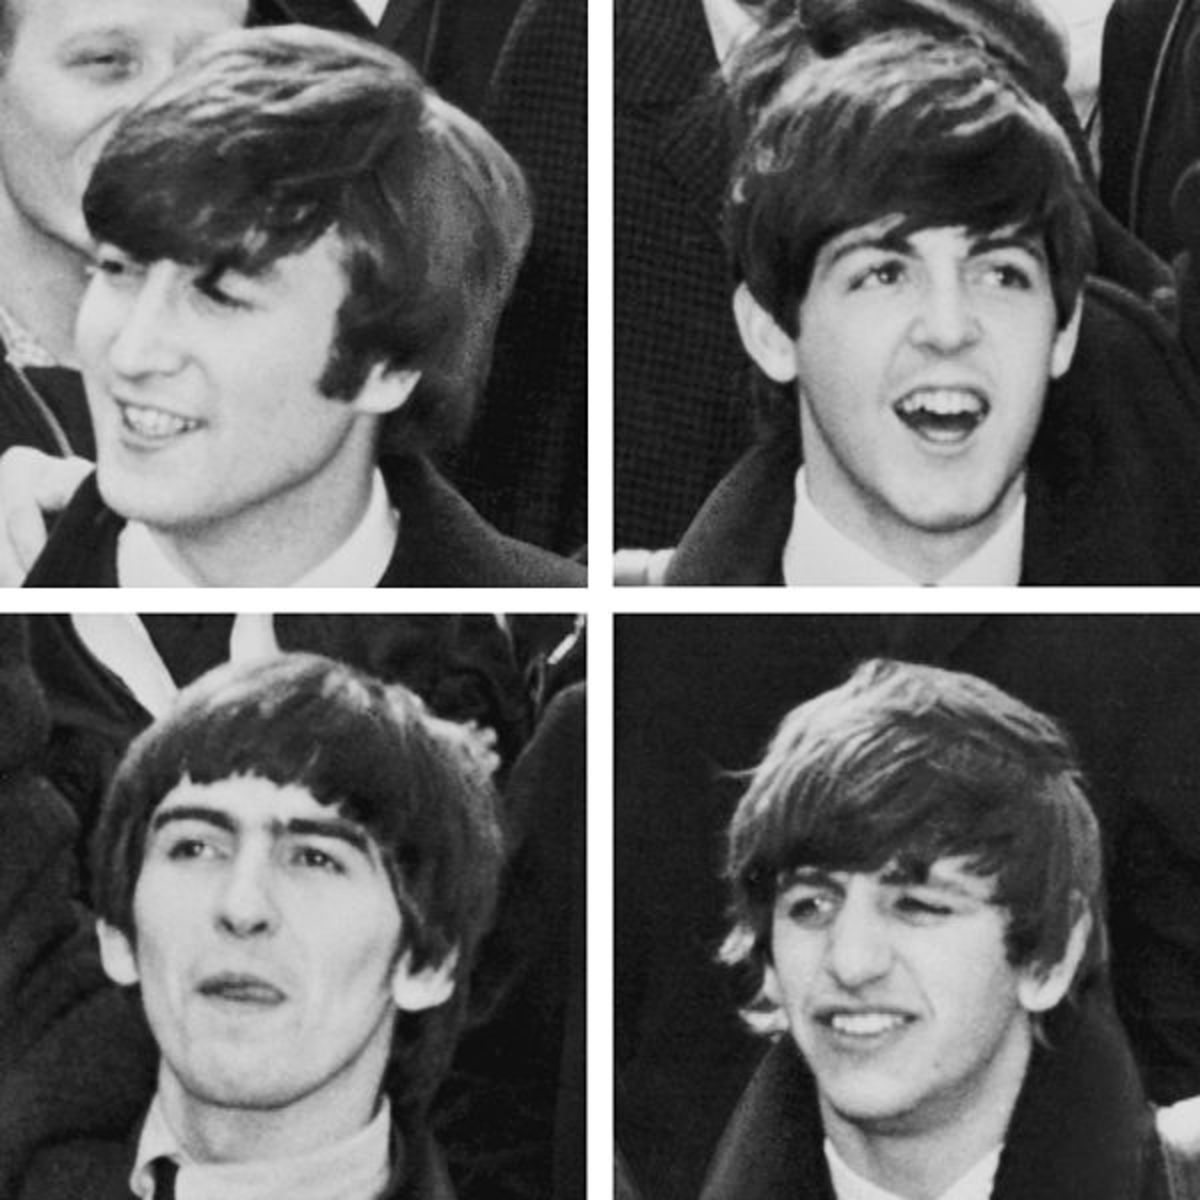 The Beatles in 1964 Top: Lennon, McCartney Bottom: Harrison, Starr